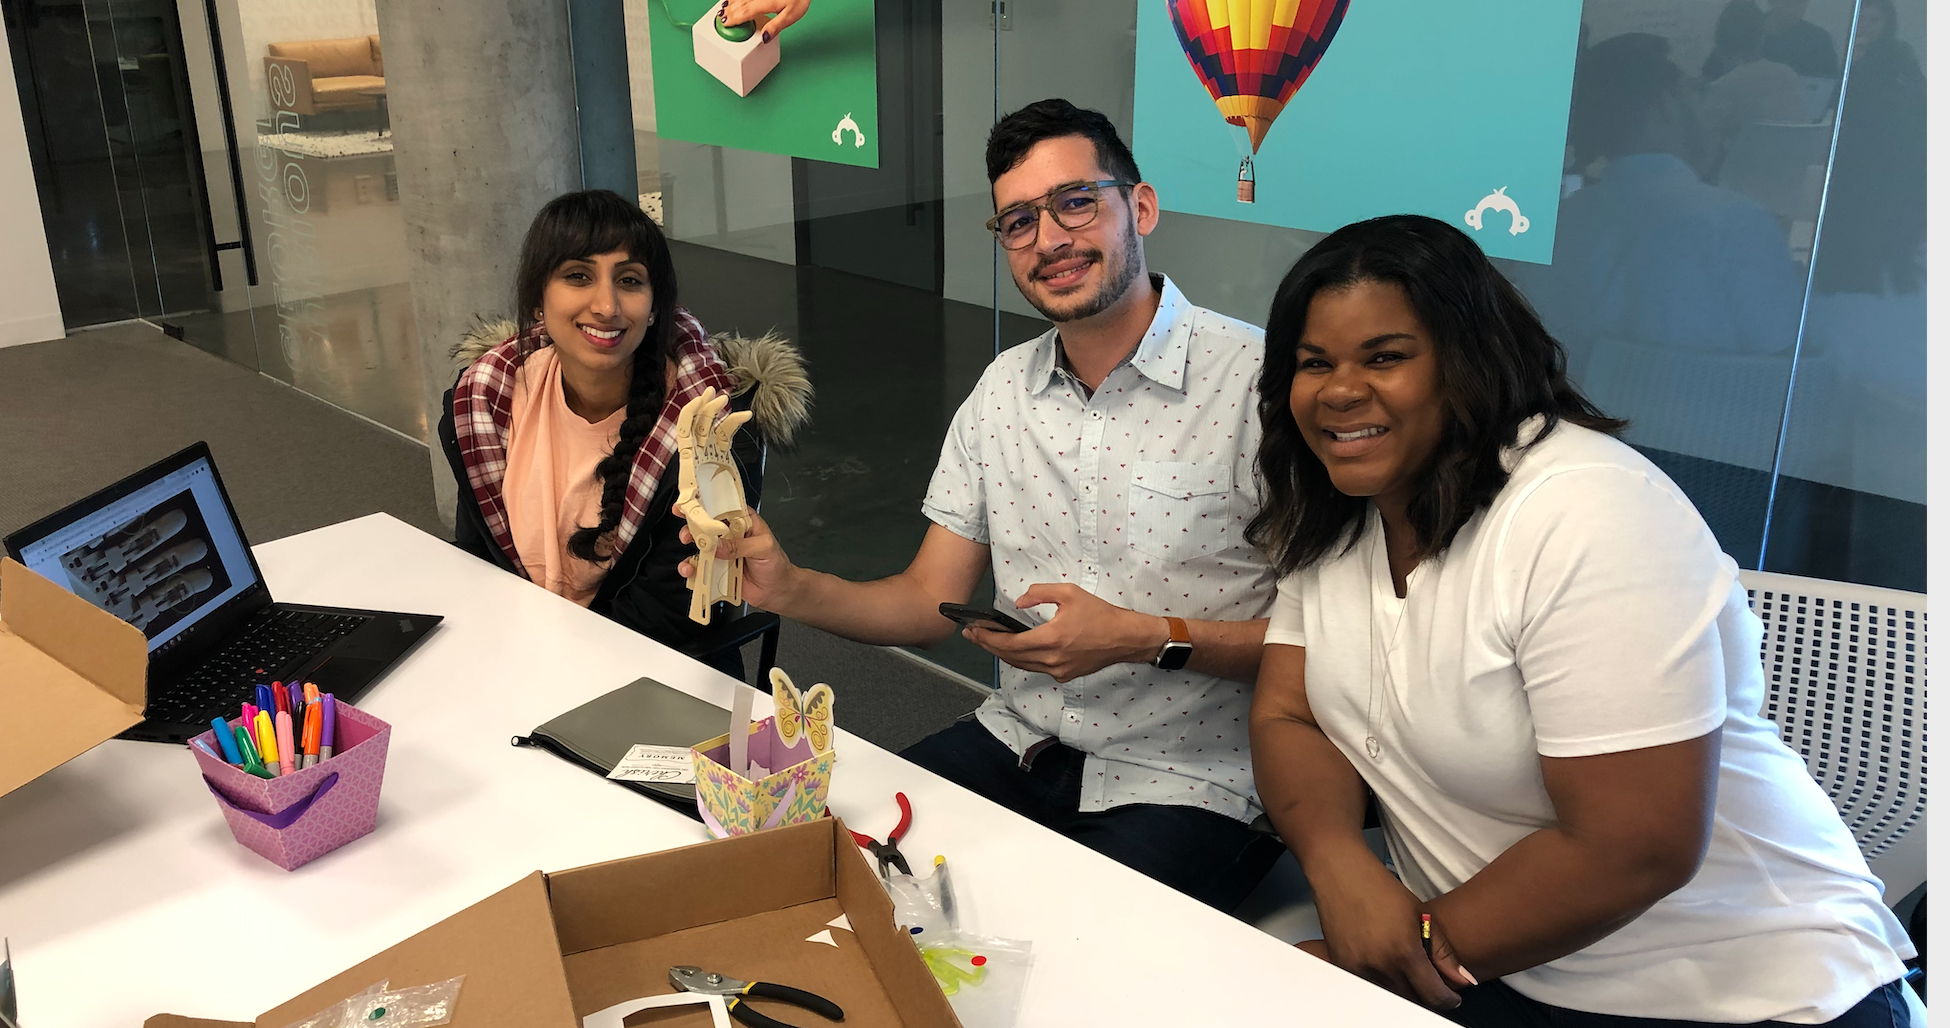 New hires make hands of gratitude: Inside the inaugural Power the Community event